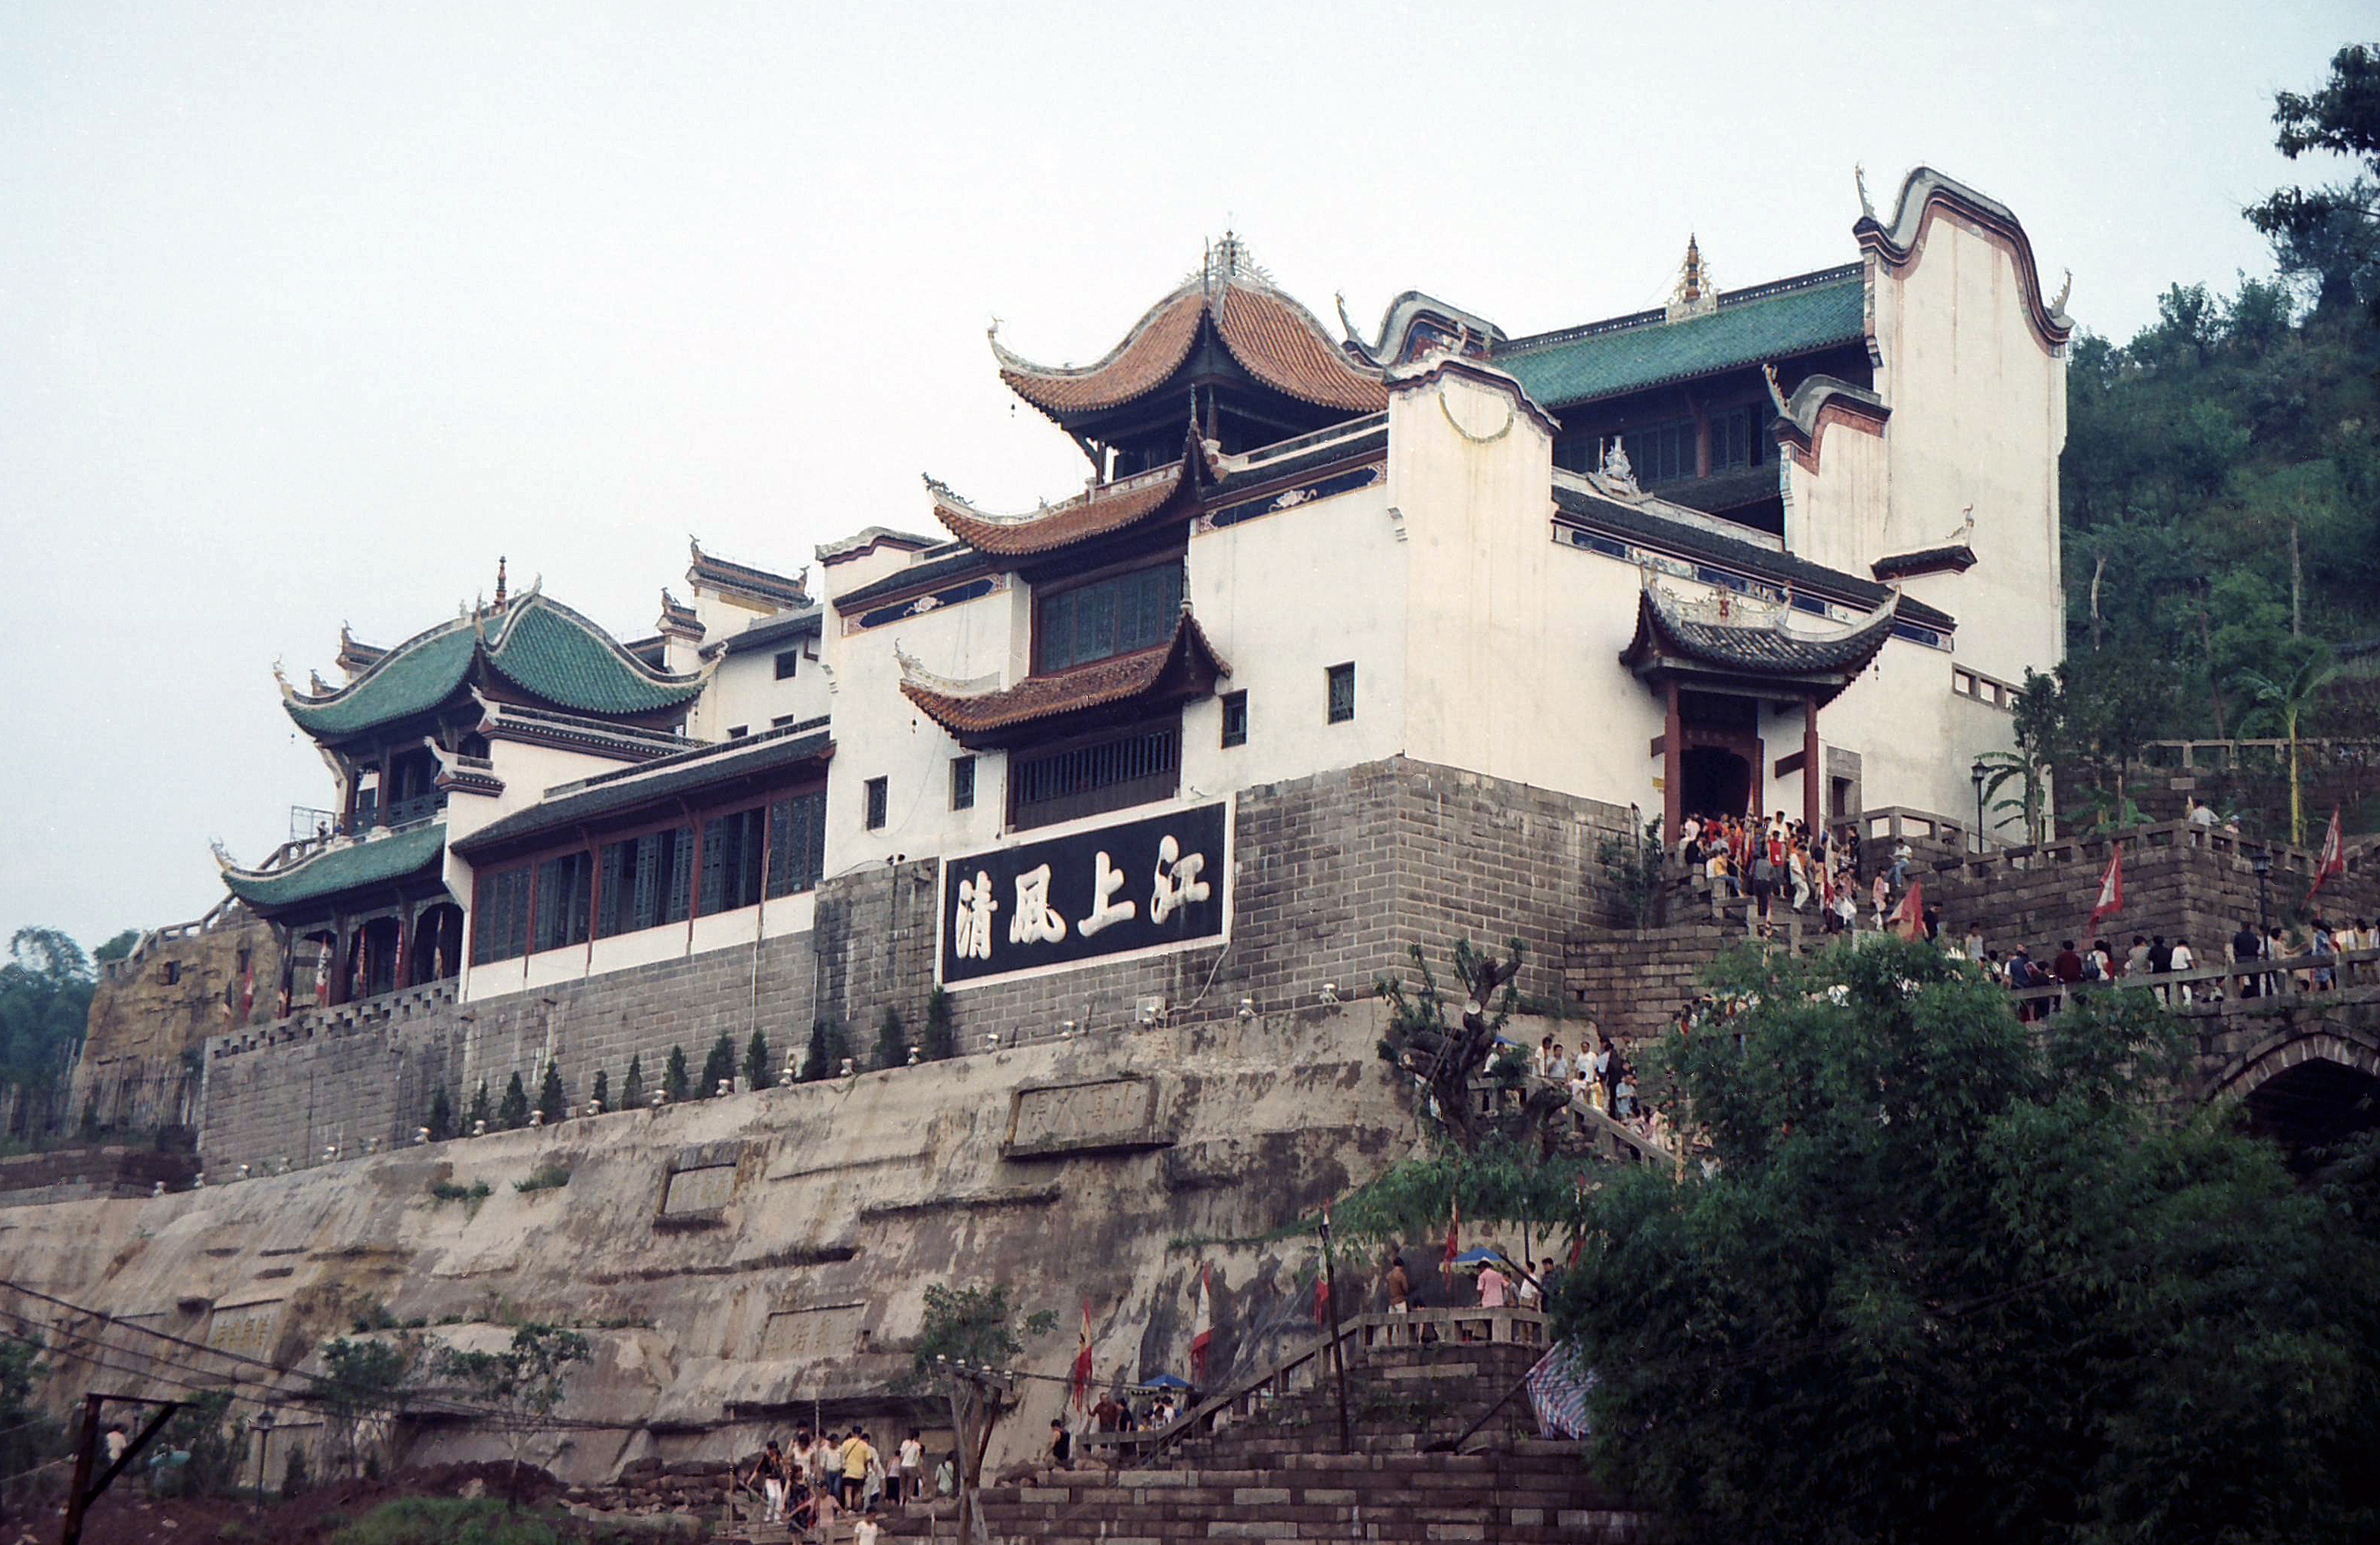 Zhang Fei temple, Hubei China.jpg - Zhang Fei temple